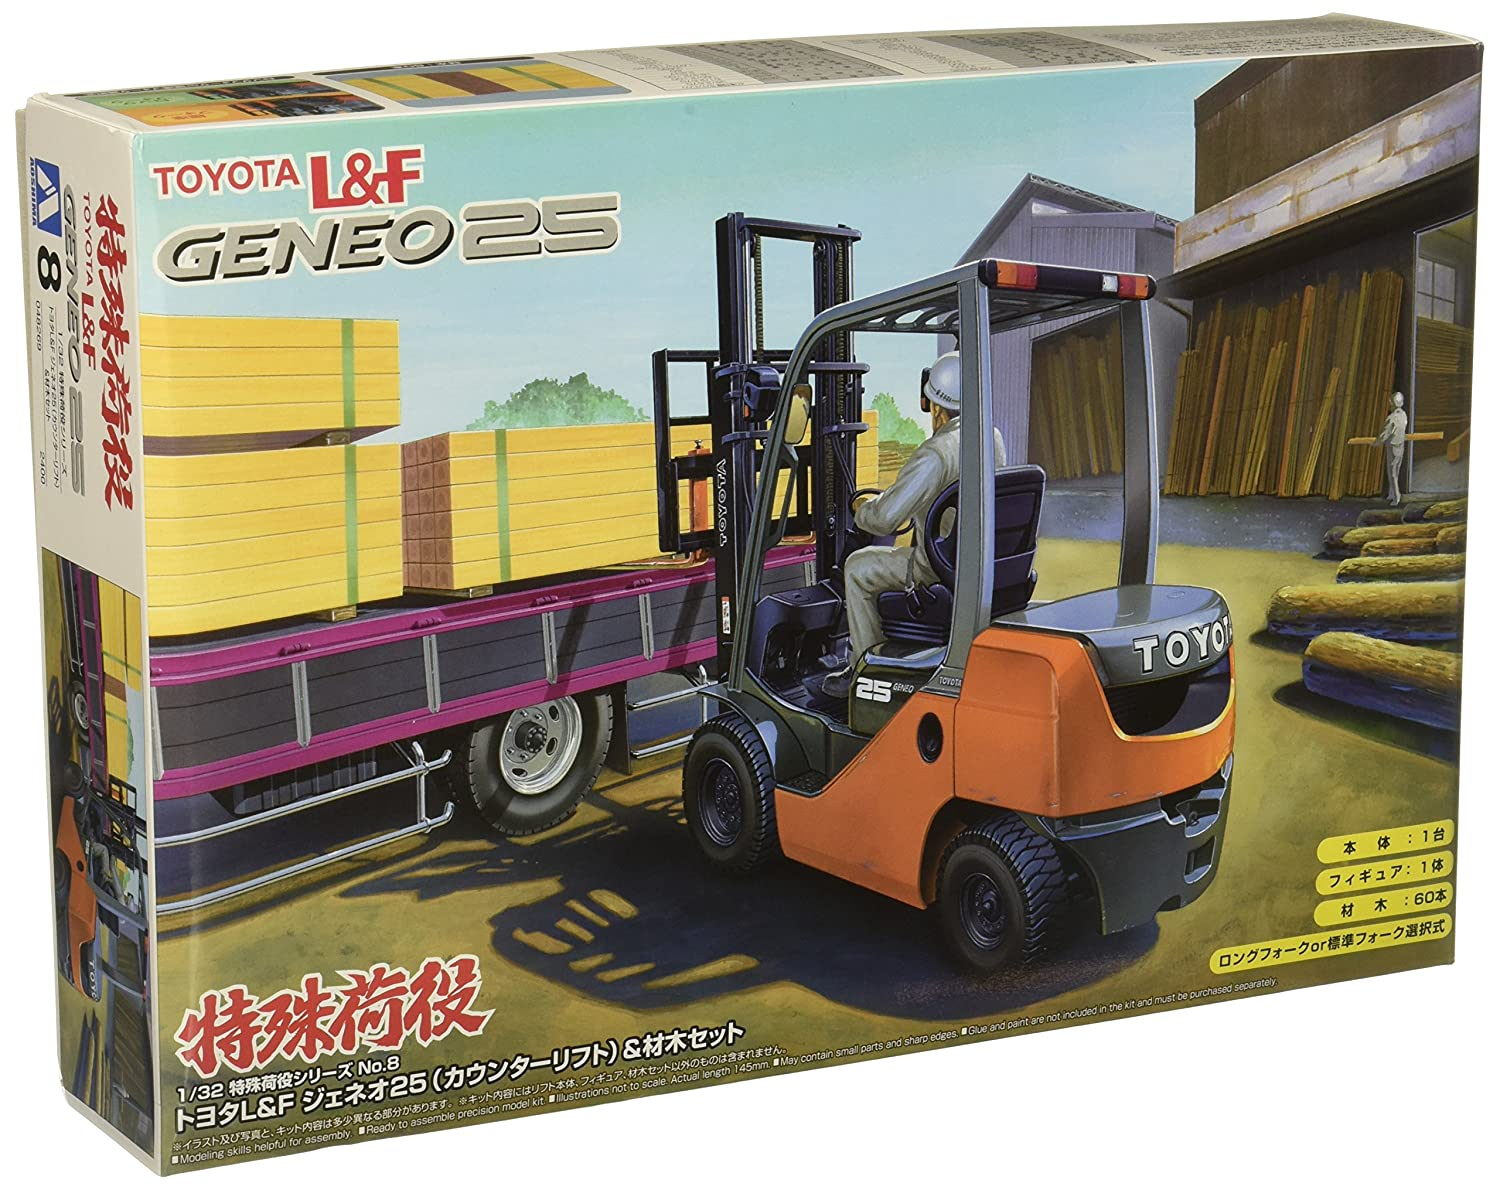 No.08 Toyota L & F Geneo 25 1/32 Special Cargo (counter lift) and timber set (japan import)